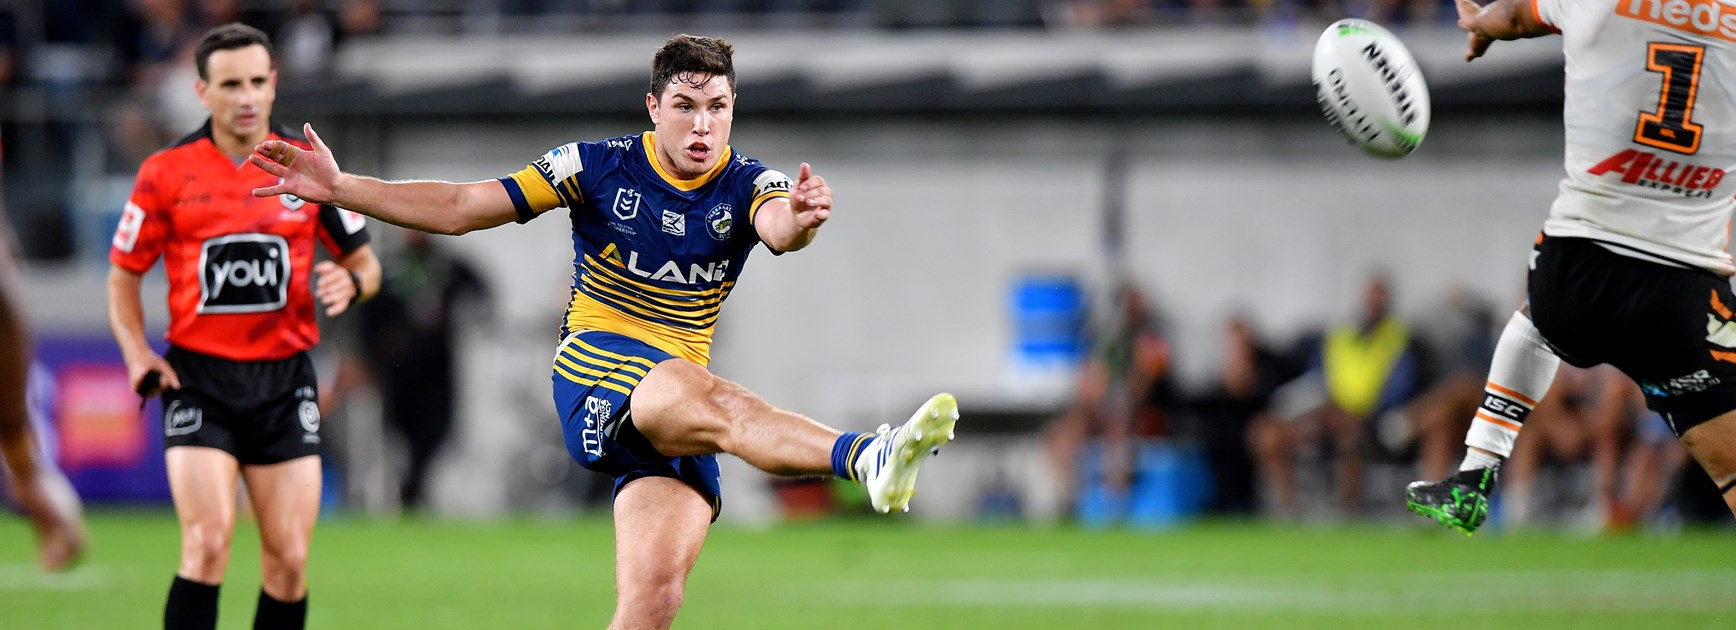 Deciding drawn games: NRL.com experts have their say